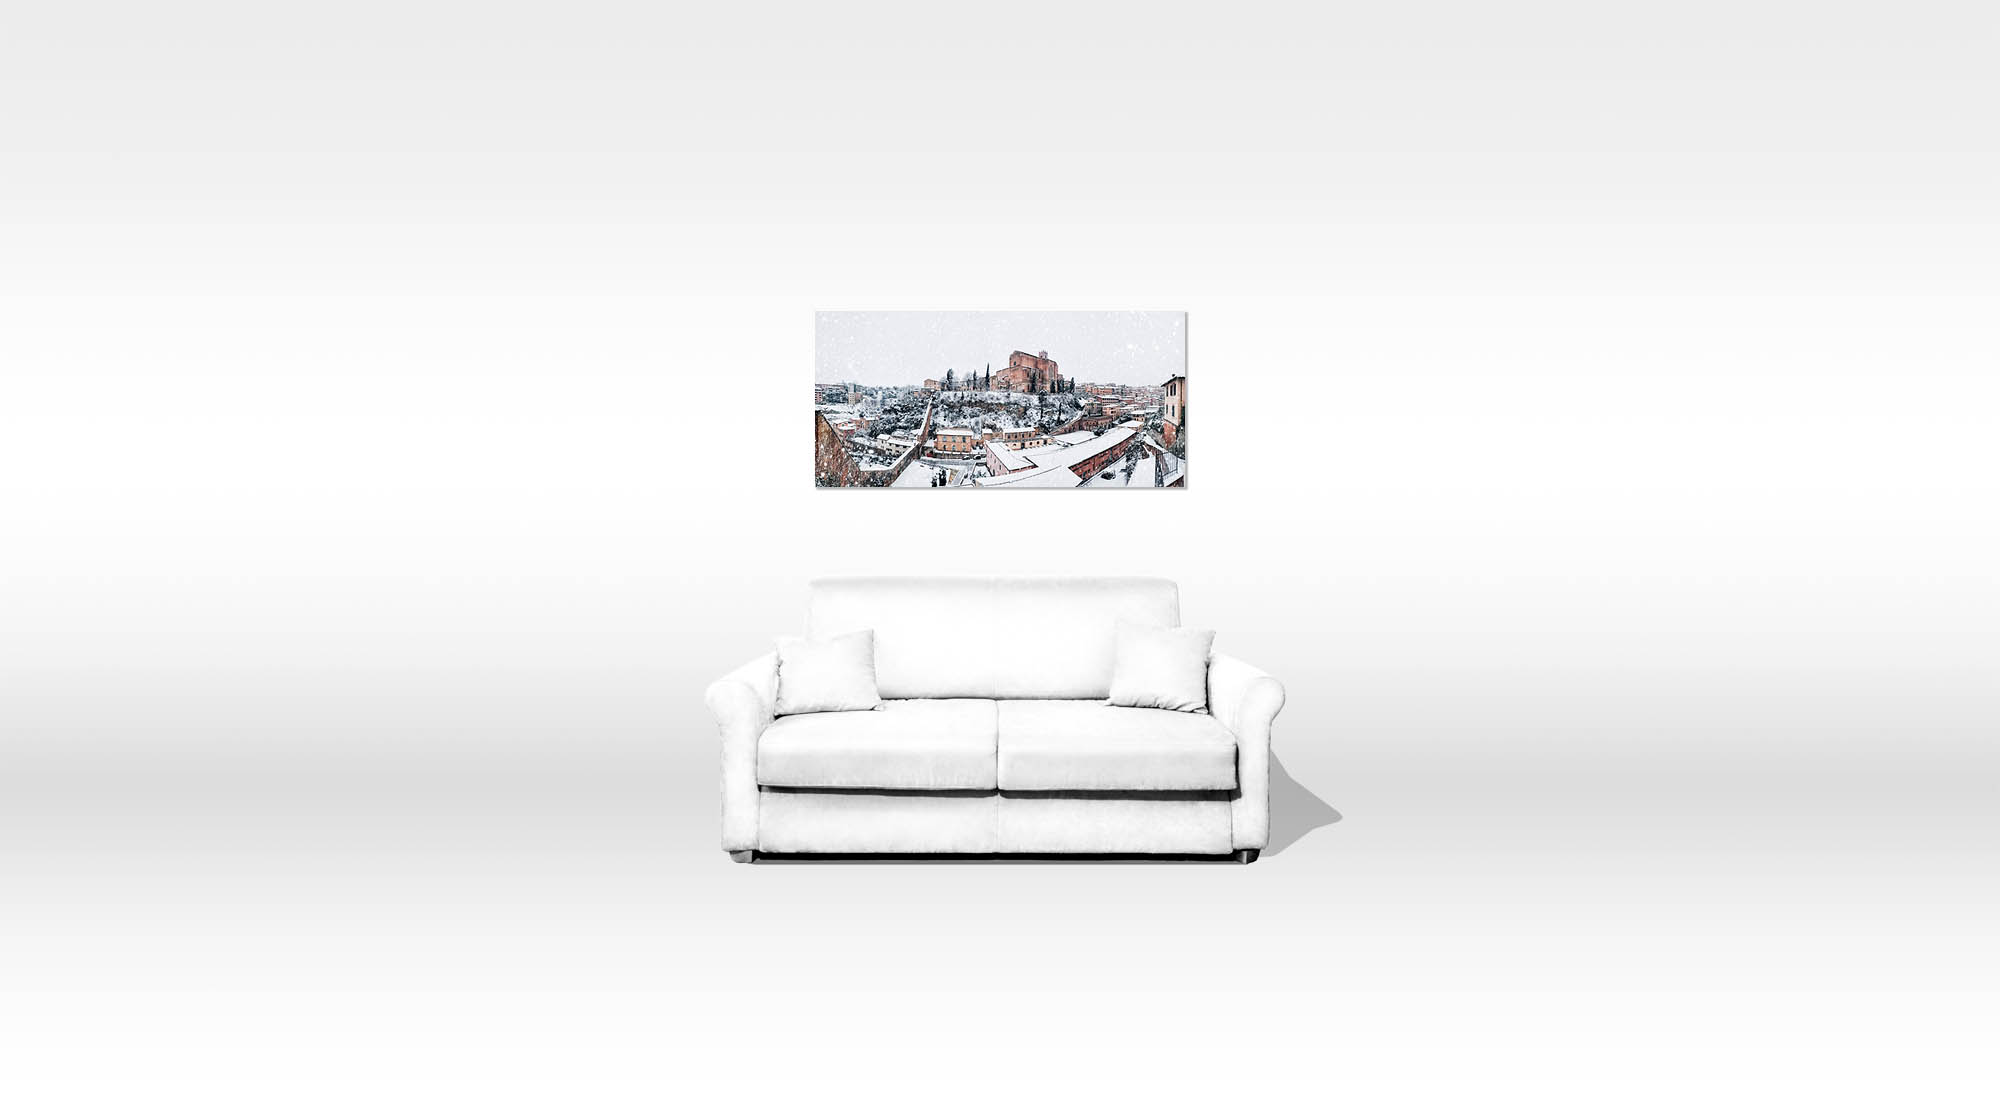 Size estimation based on a 190 cm sofa. Picture is 40 x 72 cm